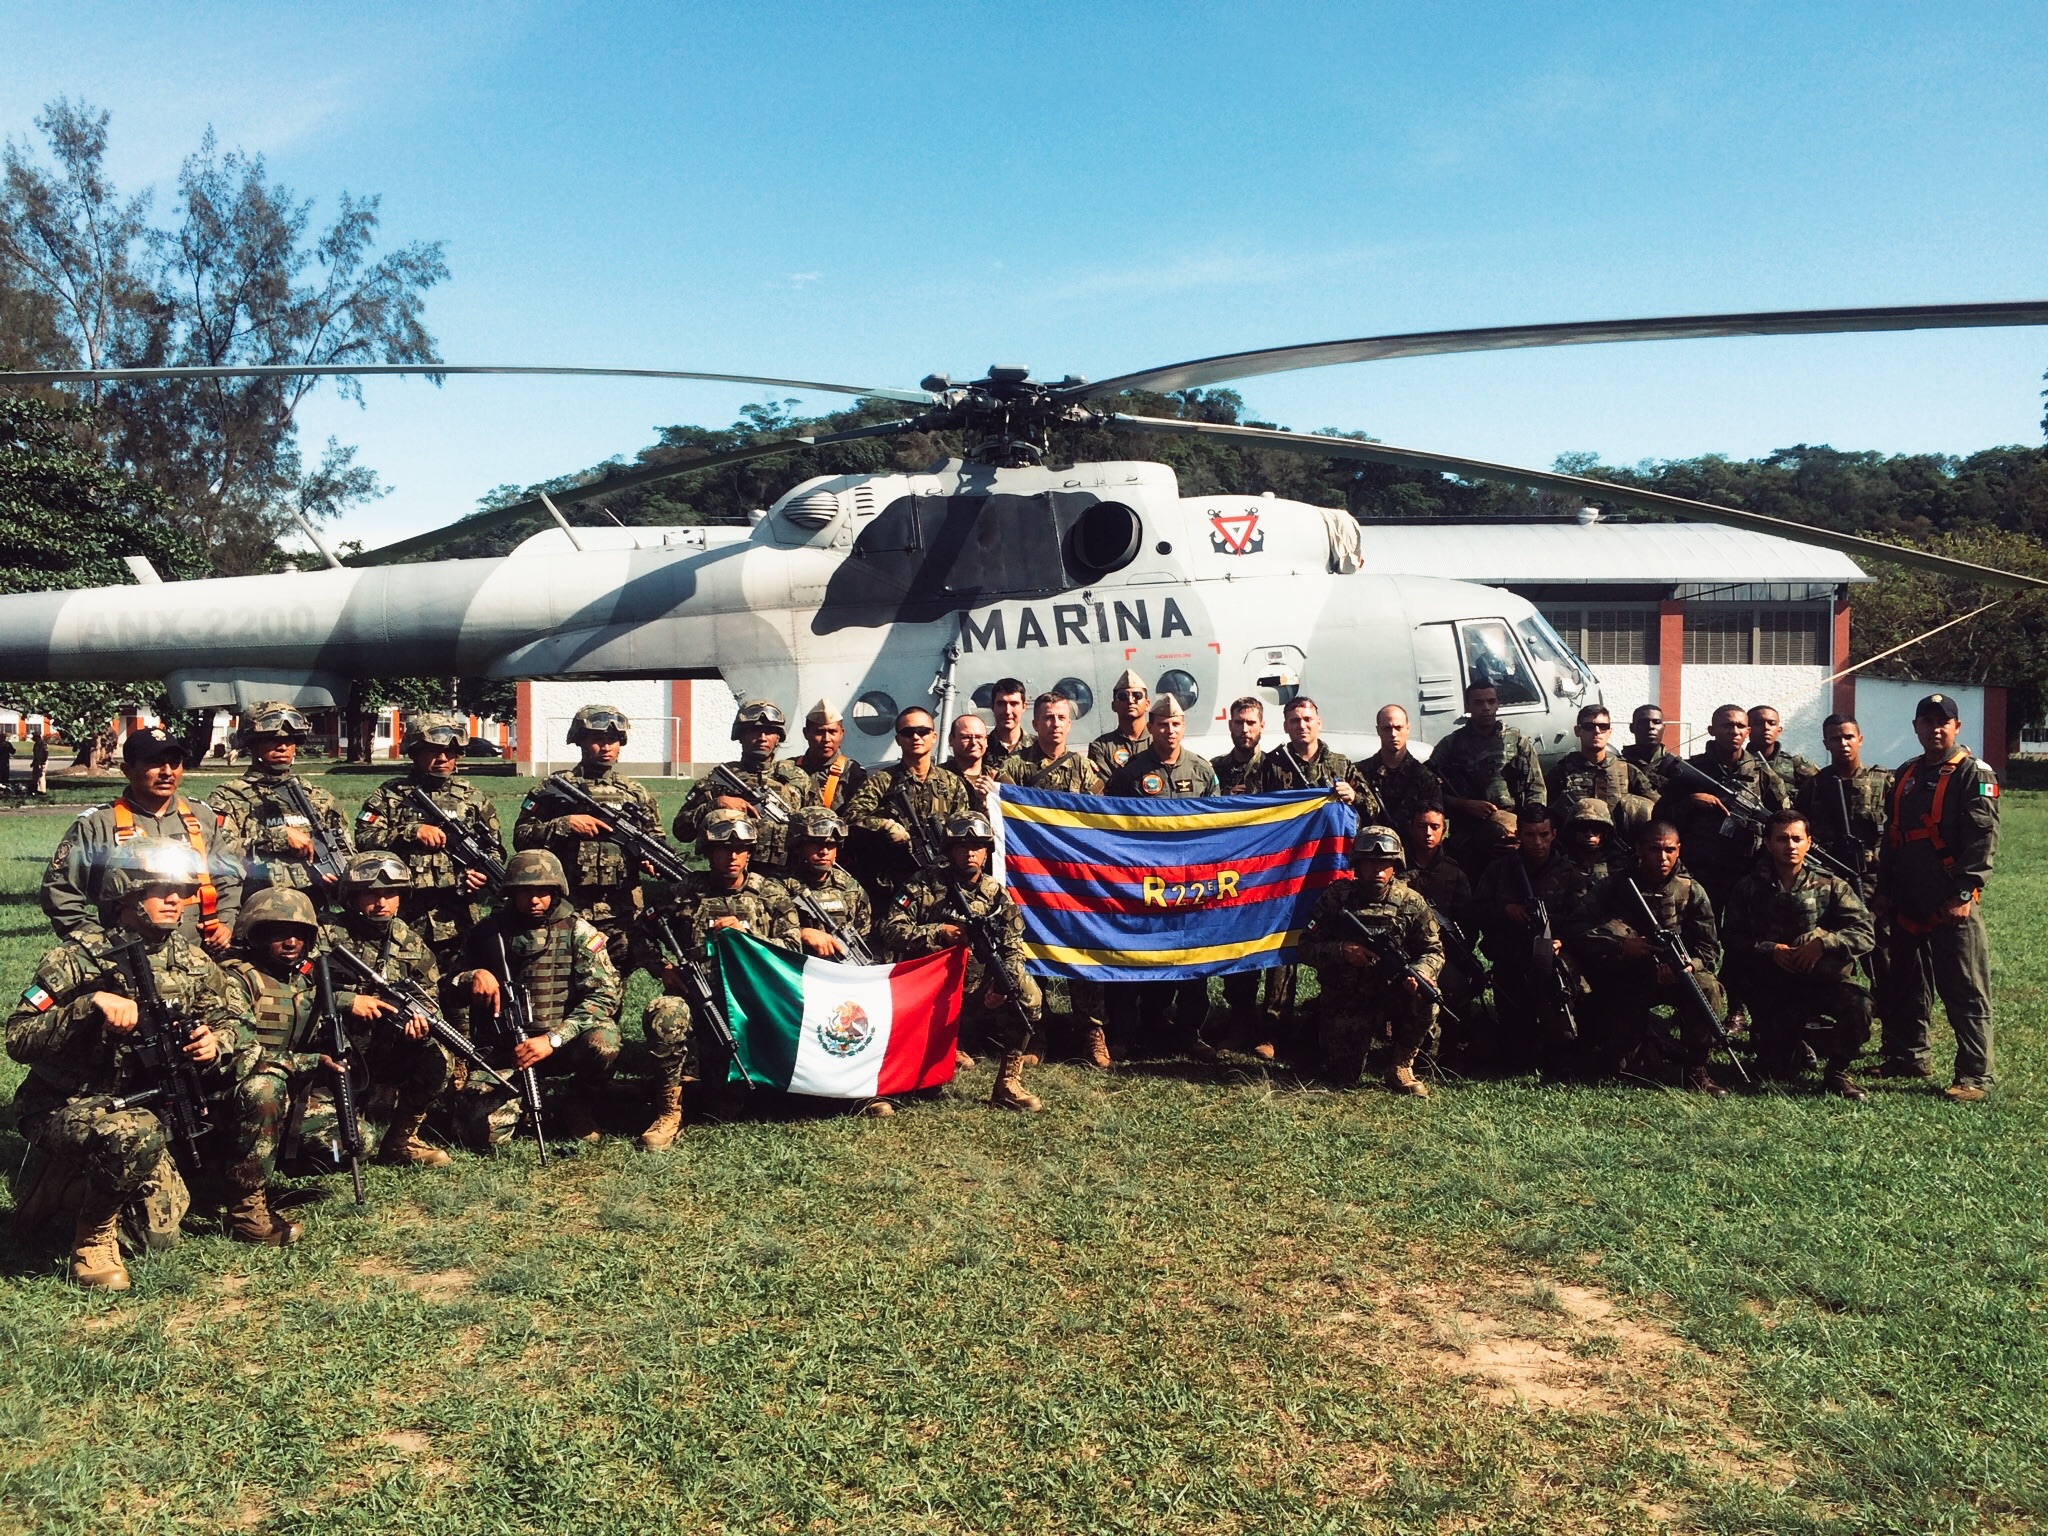 Participants from Canadian, Mexican, and Brazilian delegations proudly display their colours in front of a MI-17 Hip helicopter from the Mexican Navy during the South American exercise UNITAS-AMPHIBIOUS held in Brazil from November 14 to 25, 2015. Photo by: Capt Ken Wang, 2nd Batallion, Royal 22e Régiment. ©2015 DND-MDN Canada.